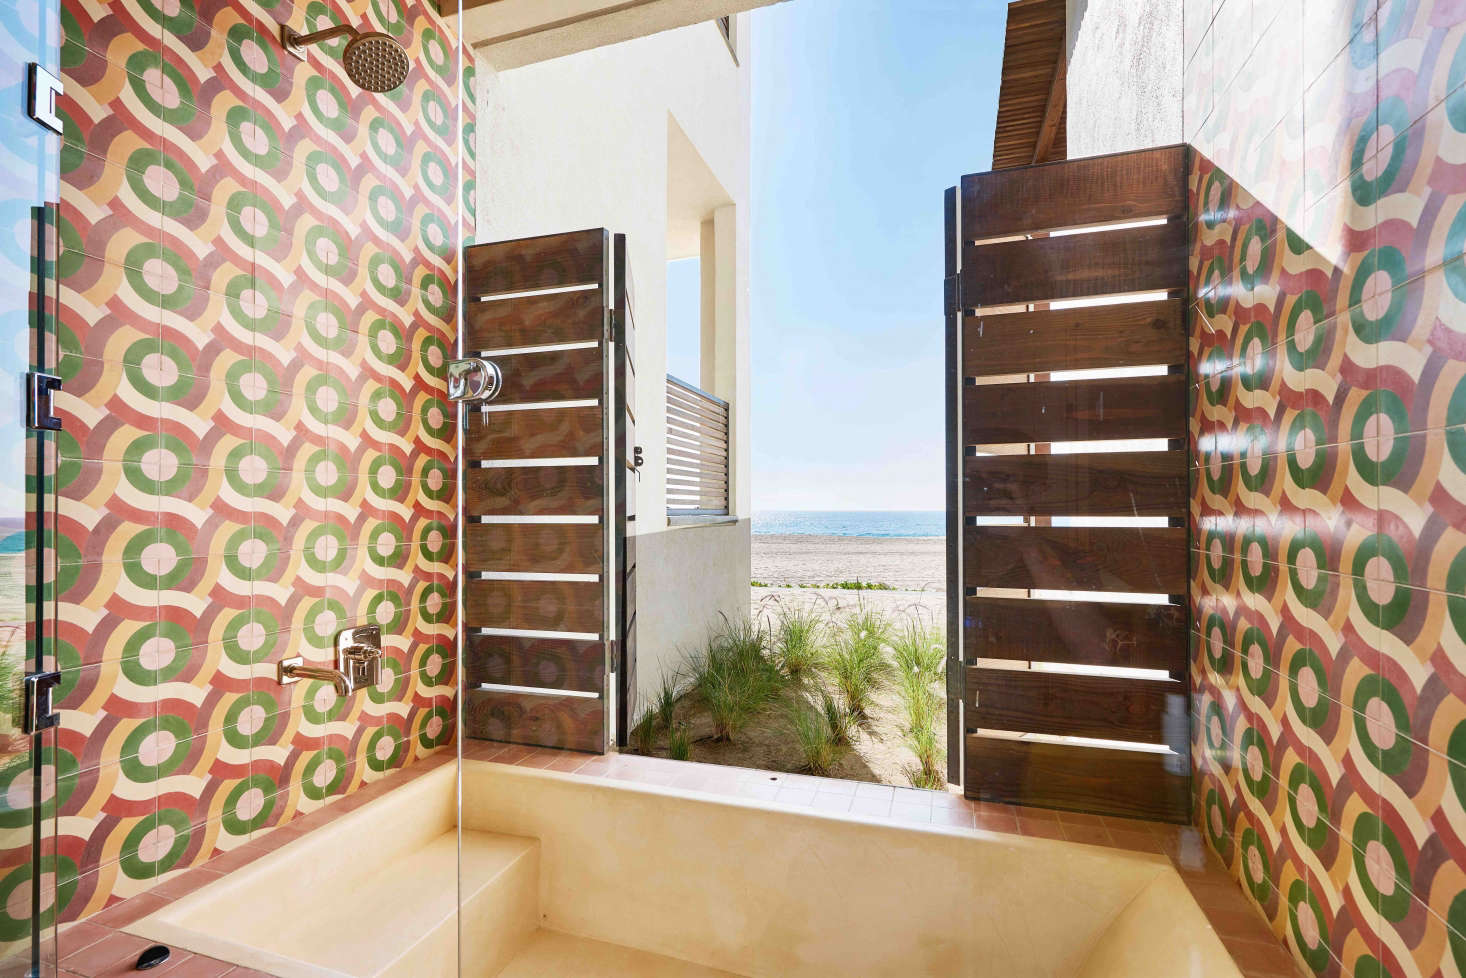 Shutters open this indoor/outdoor shower, lined in encaustic cement tile from Amethyst Artisan, to views of Punta Lobos beach. Fixtures are from Waterworks, and toiletries are by Malin & Goetz.